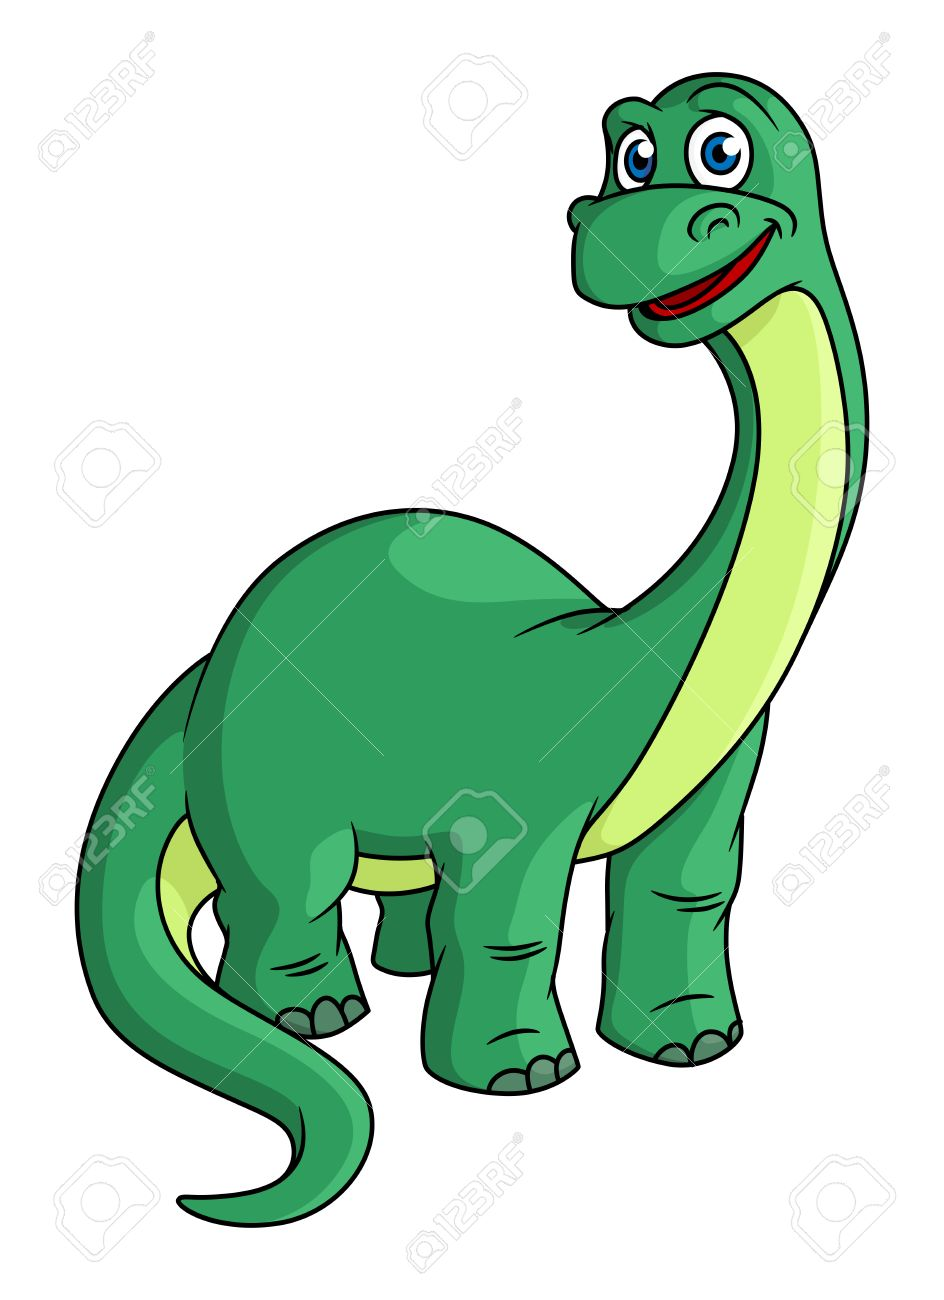 Cartoon Characters With Long Necks : cartoon, characters, necks, Adorable, Green, Cartoon, Dinosaur, Mascot, Tail,.., Royalty, Cliparts,, Vectors,, Stock, Illustration., Image, 26344213.